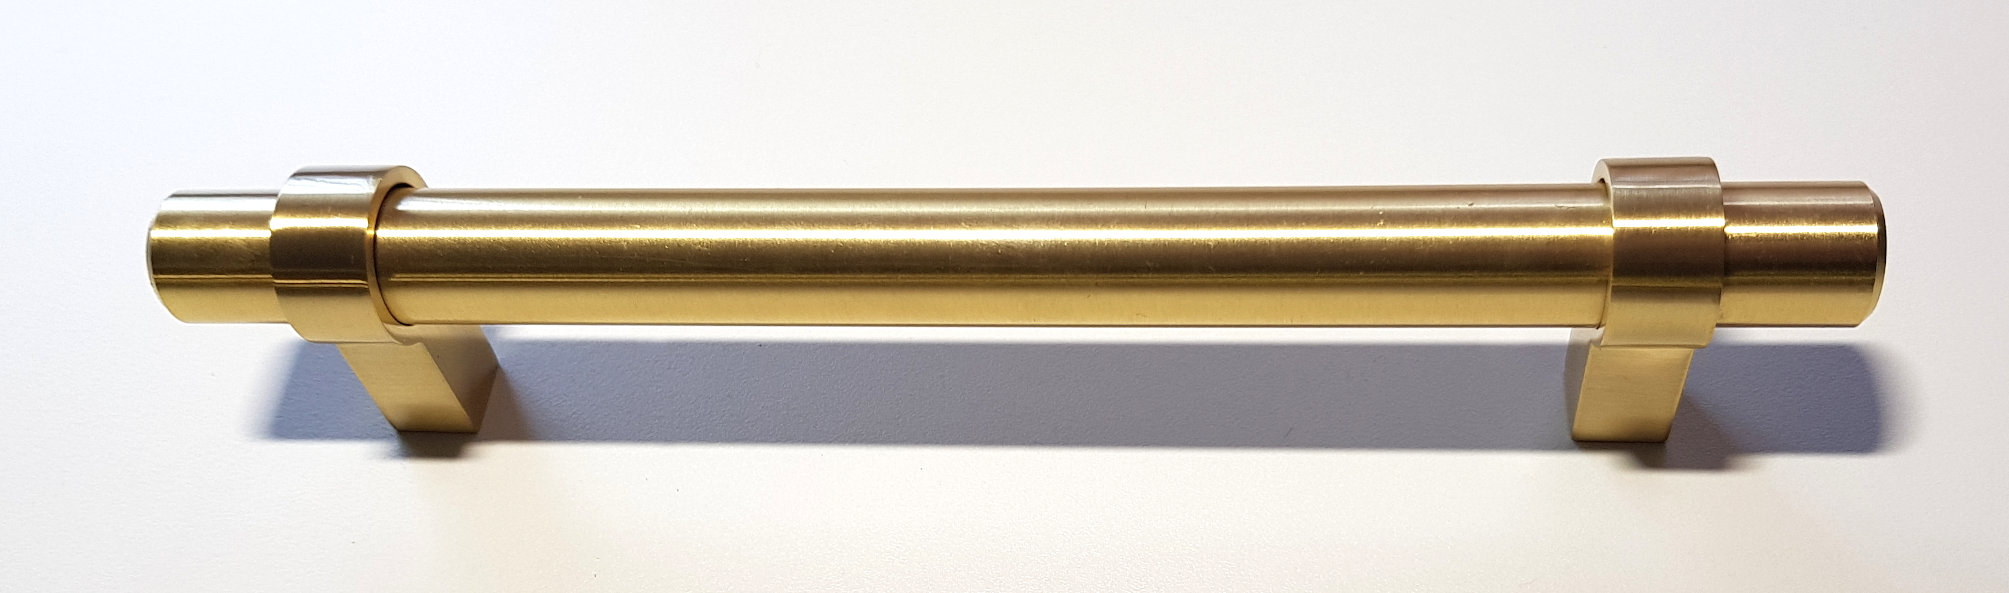 BRUSHED BRASS LEGATO HANDLE 170MM (160MM CENTRES)